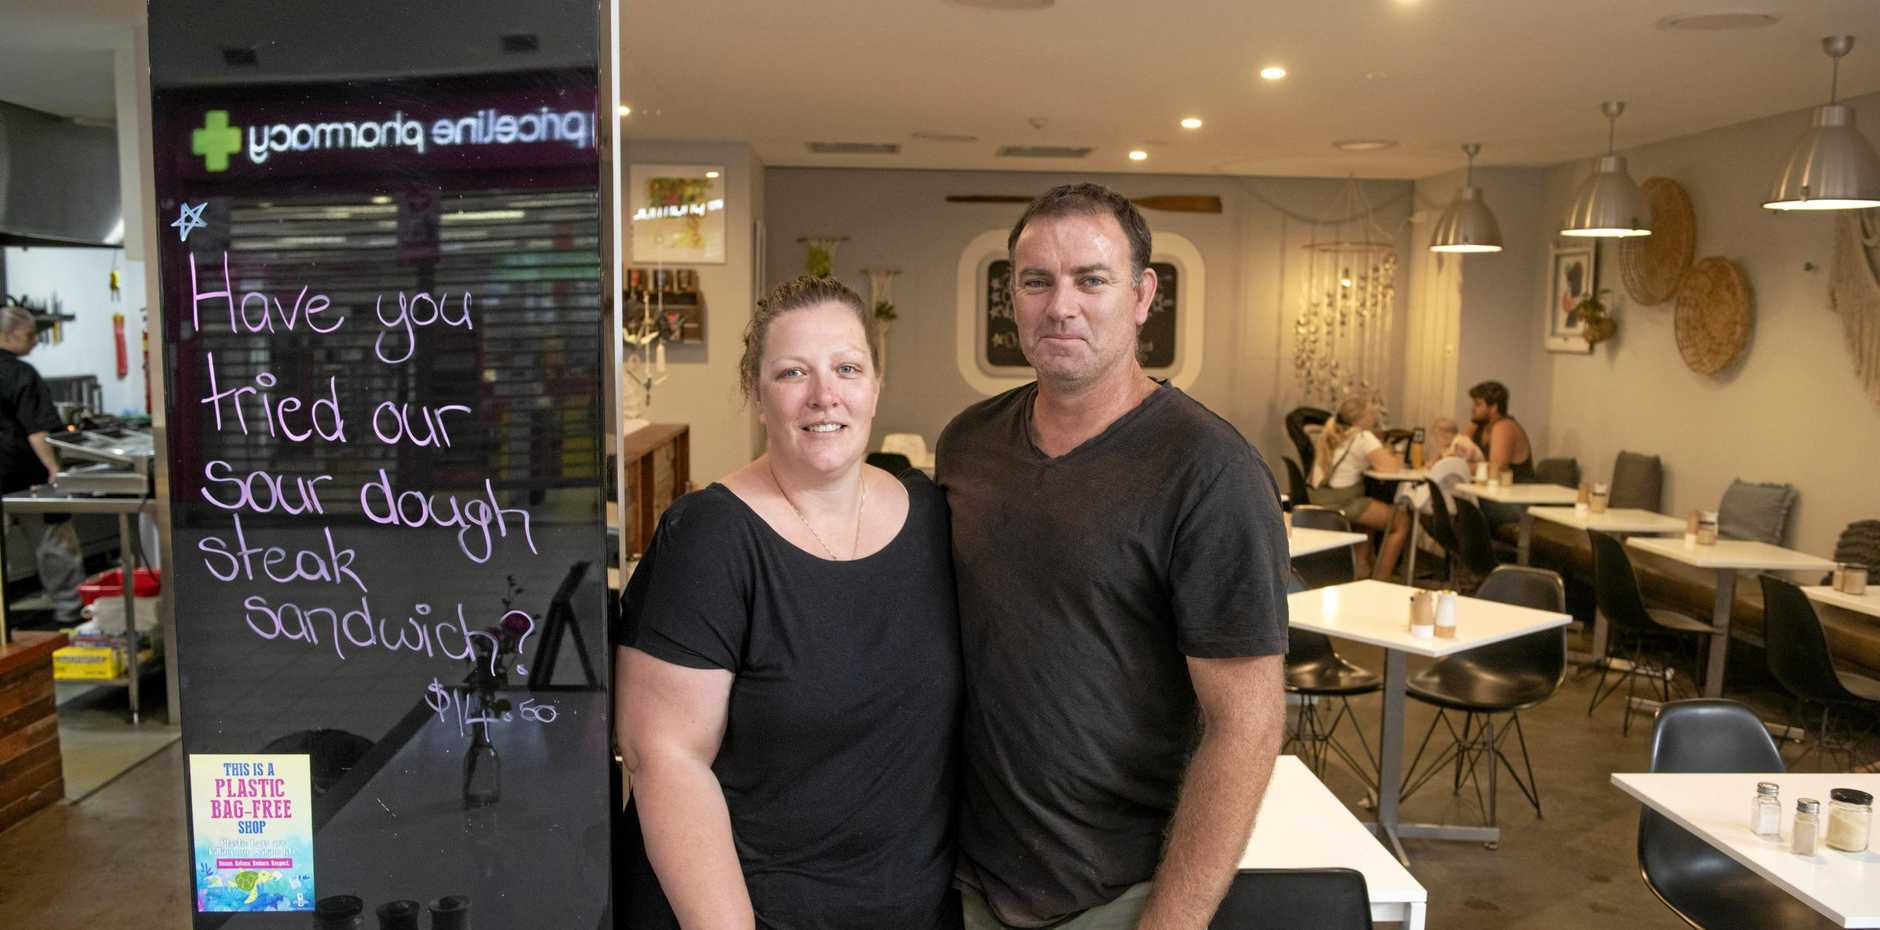 HOME GROWN: Owners of Dunes Cafe, Liz and Ben Sumner, ensure their homemade produce is made using local ingredients